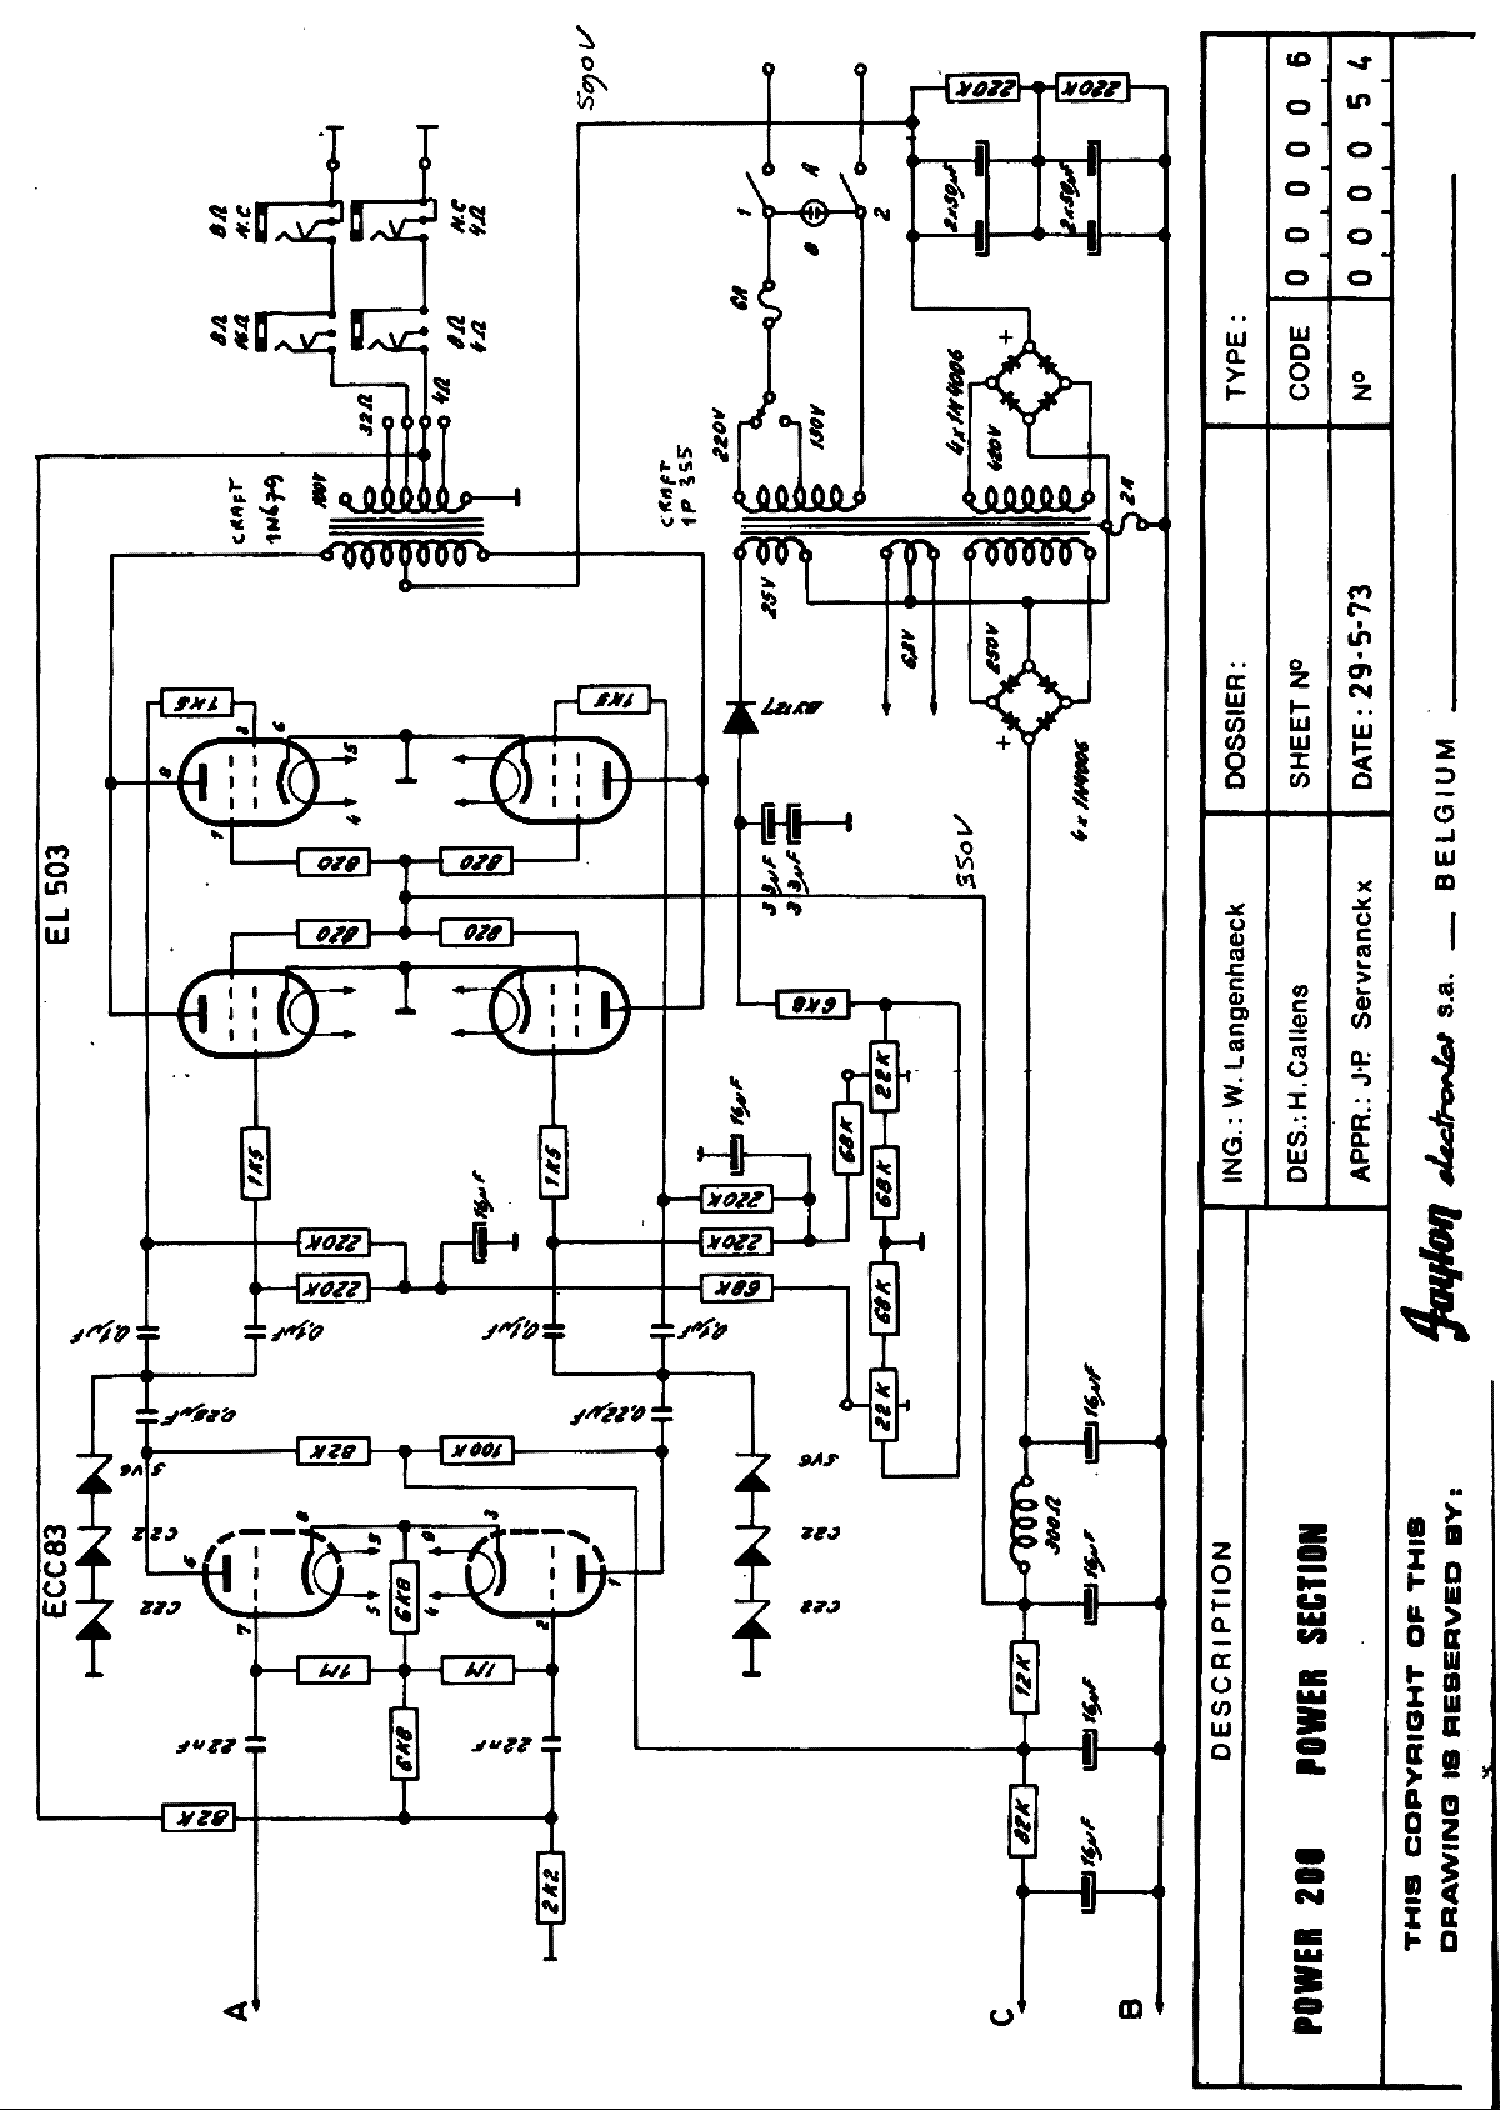 Faylon Power 200 Audio Pa Sch Service Manual Download